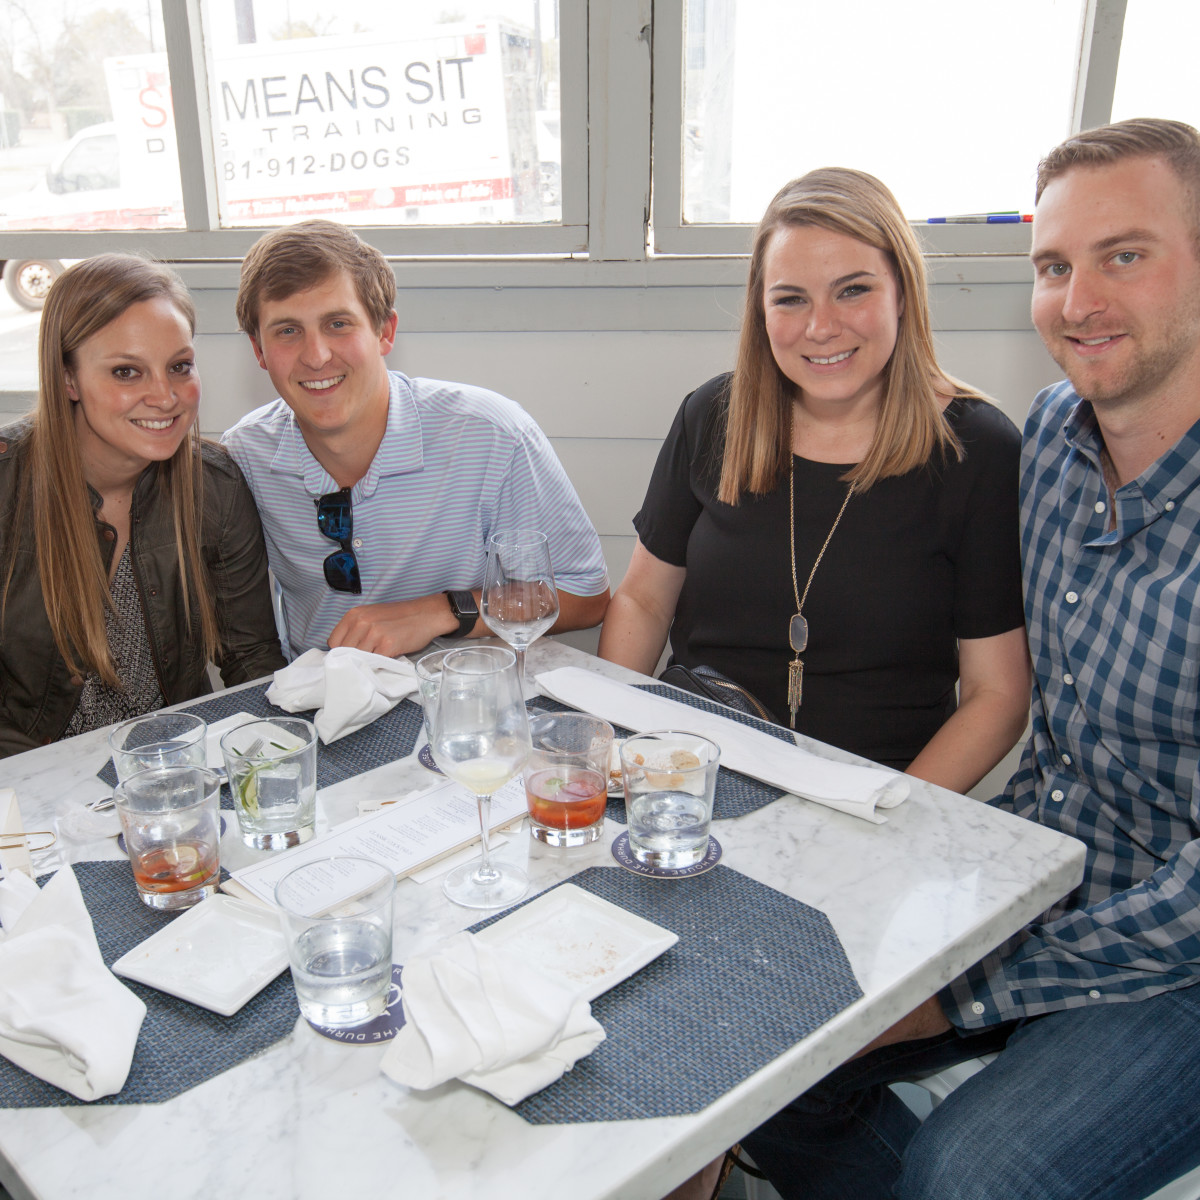 Durham House brunch, March 2016, Melinda Sisk, Dylan Koonce, Kelly Bronson, Evan Bronson